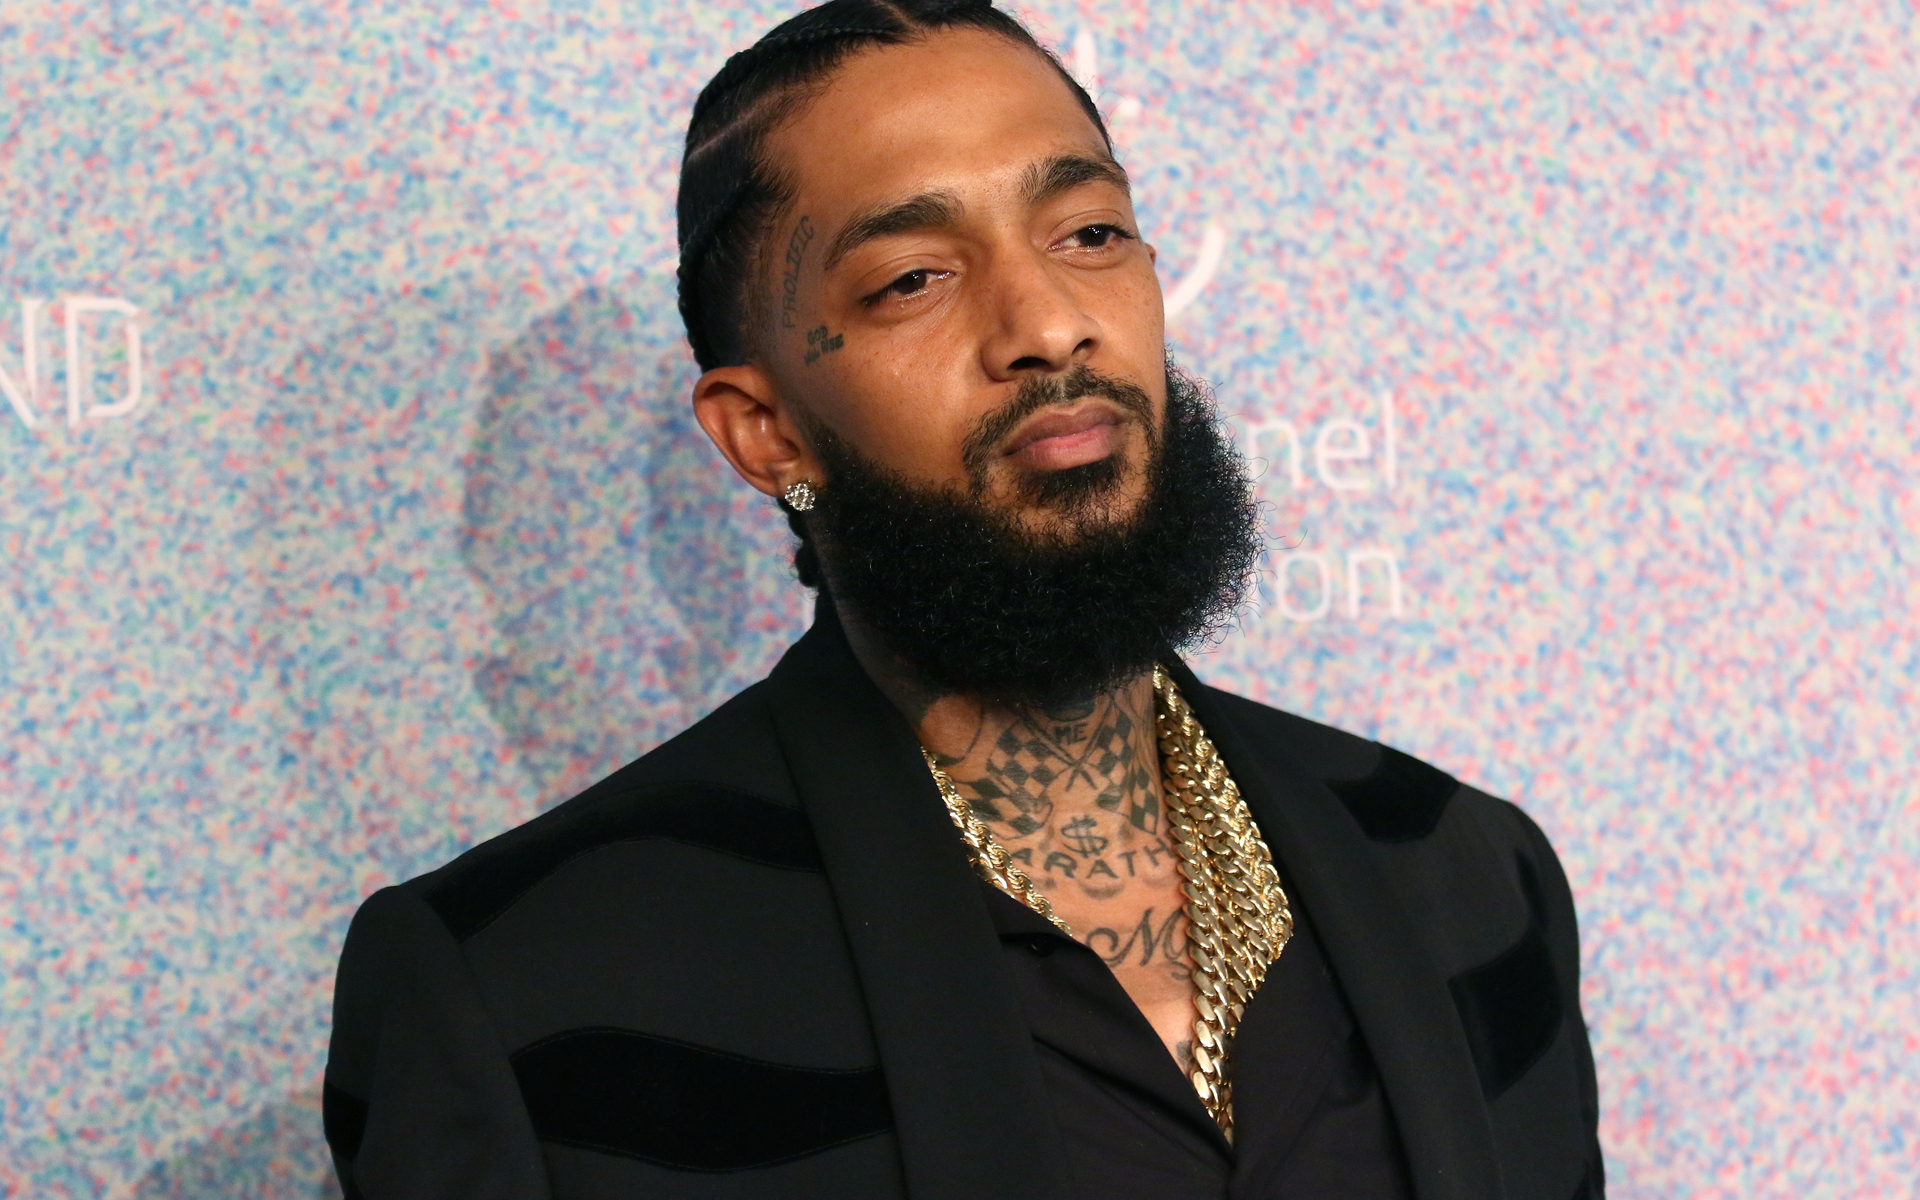 People Are Filing A Petition To Rename 'Crenshaw & Slauson' Avenue In LA To 'Nipsey Hussle Blvd' - His Fans Are Not Impressed